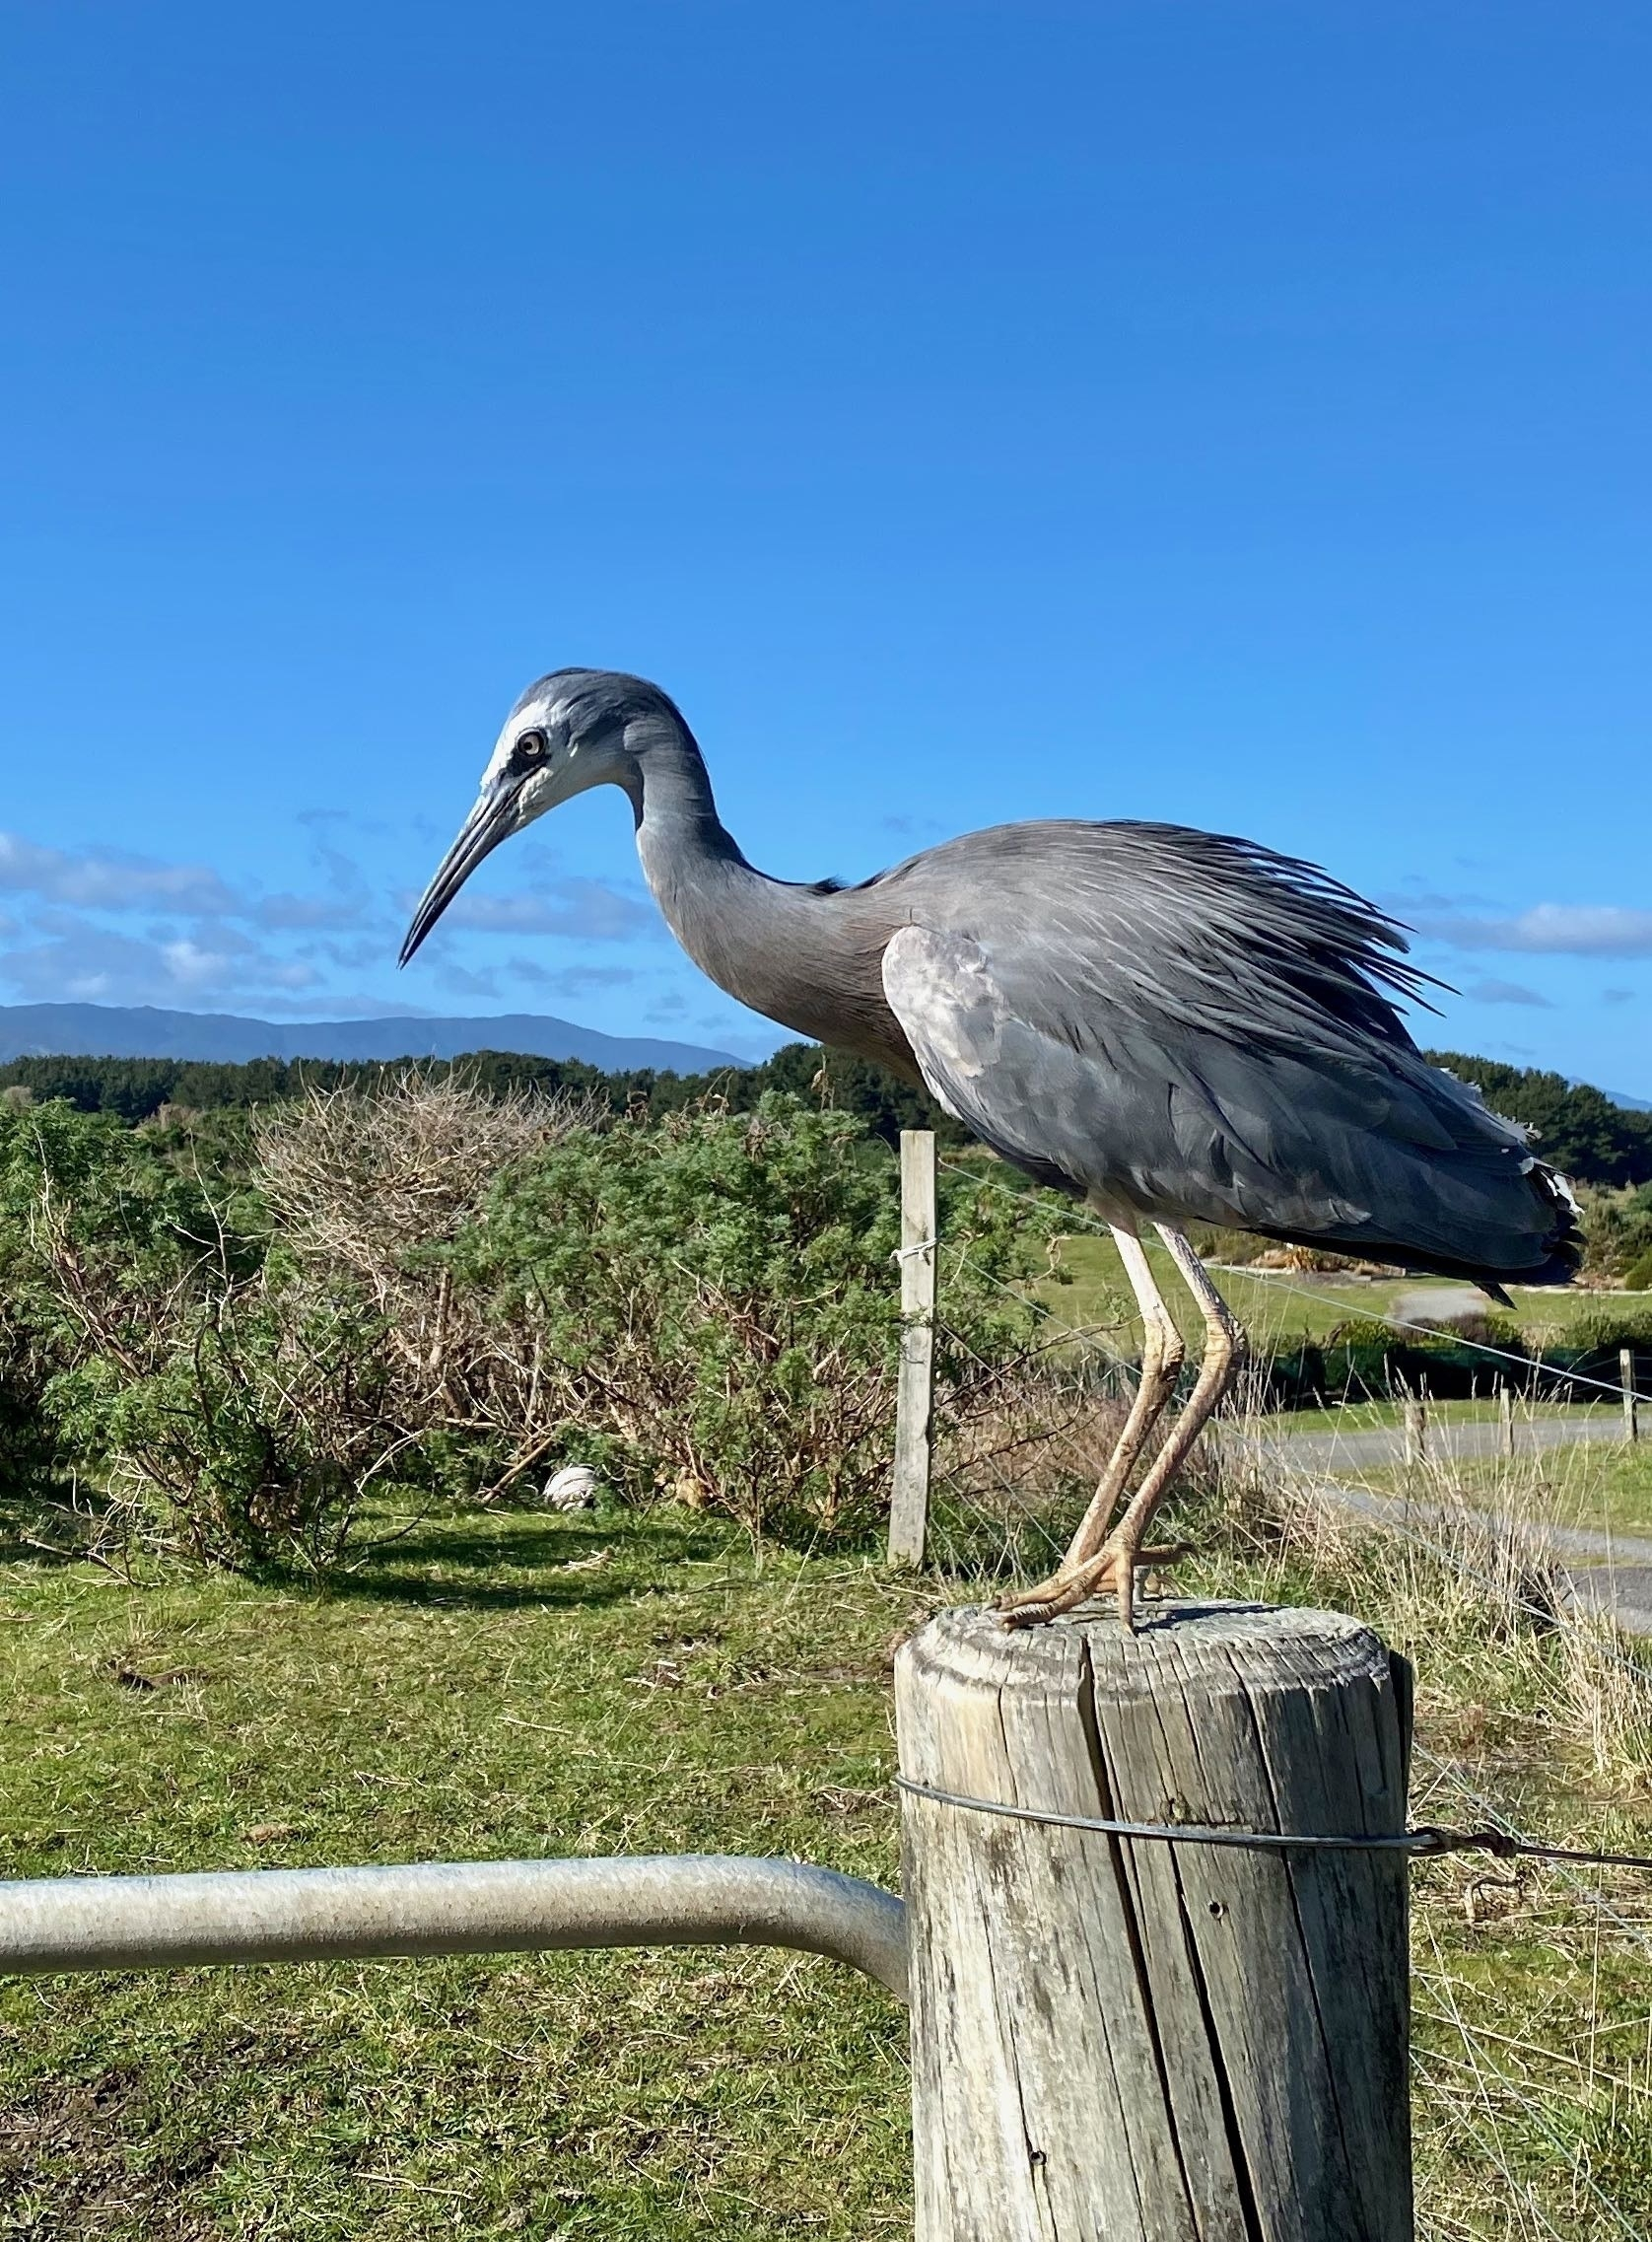 White-faced heron on a fence post with rich blue sky behind. Different posture.